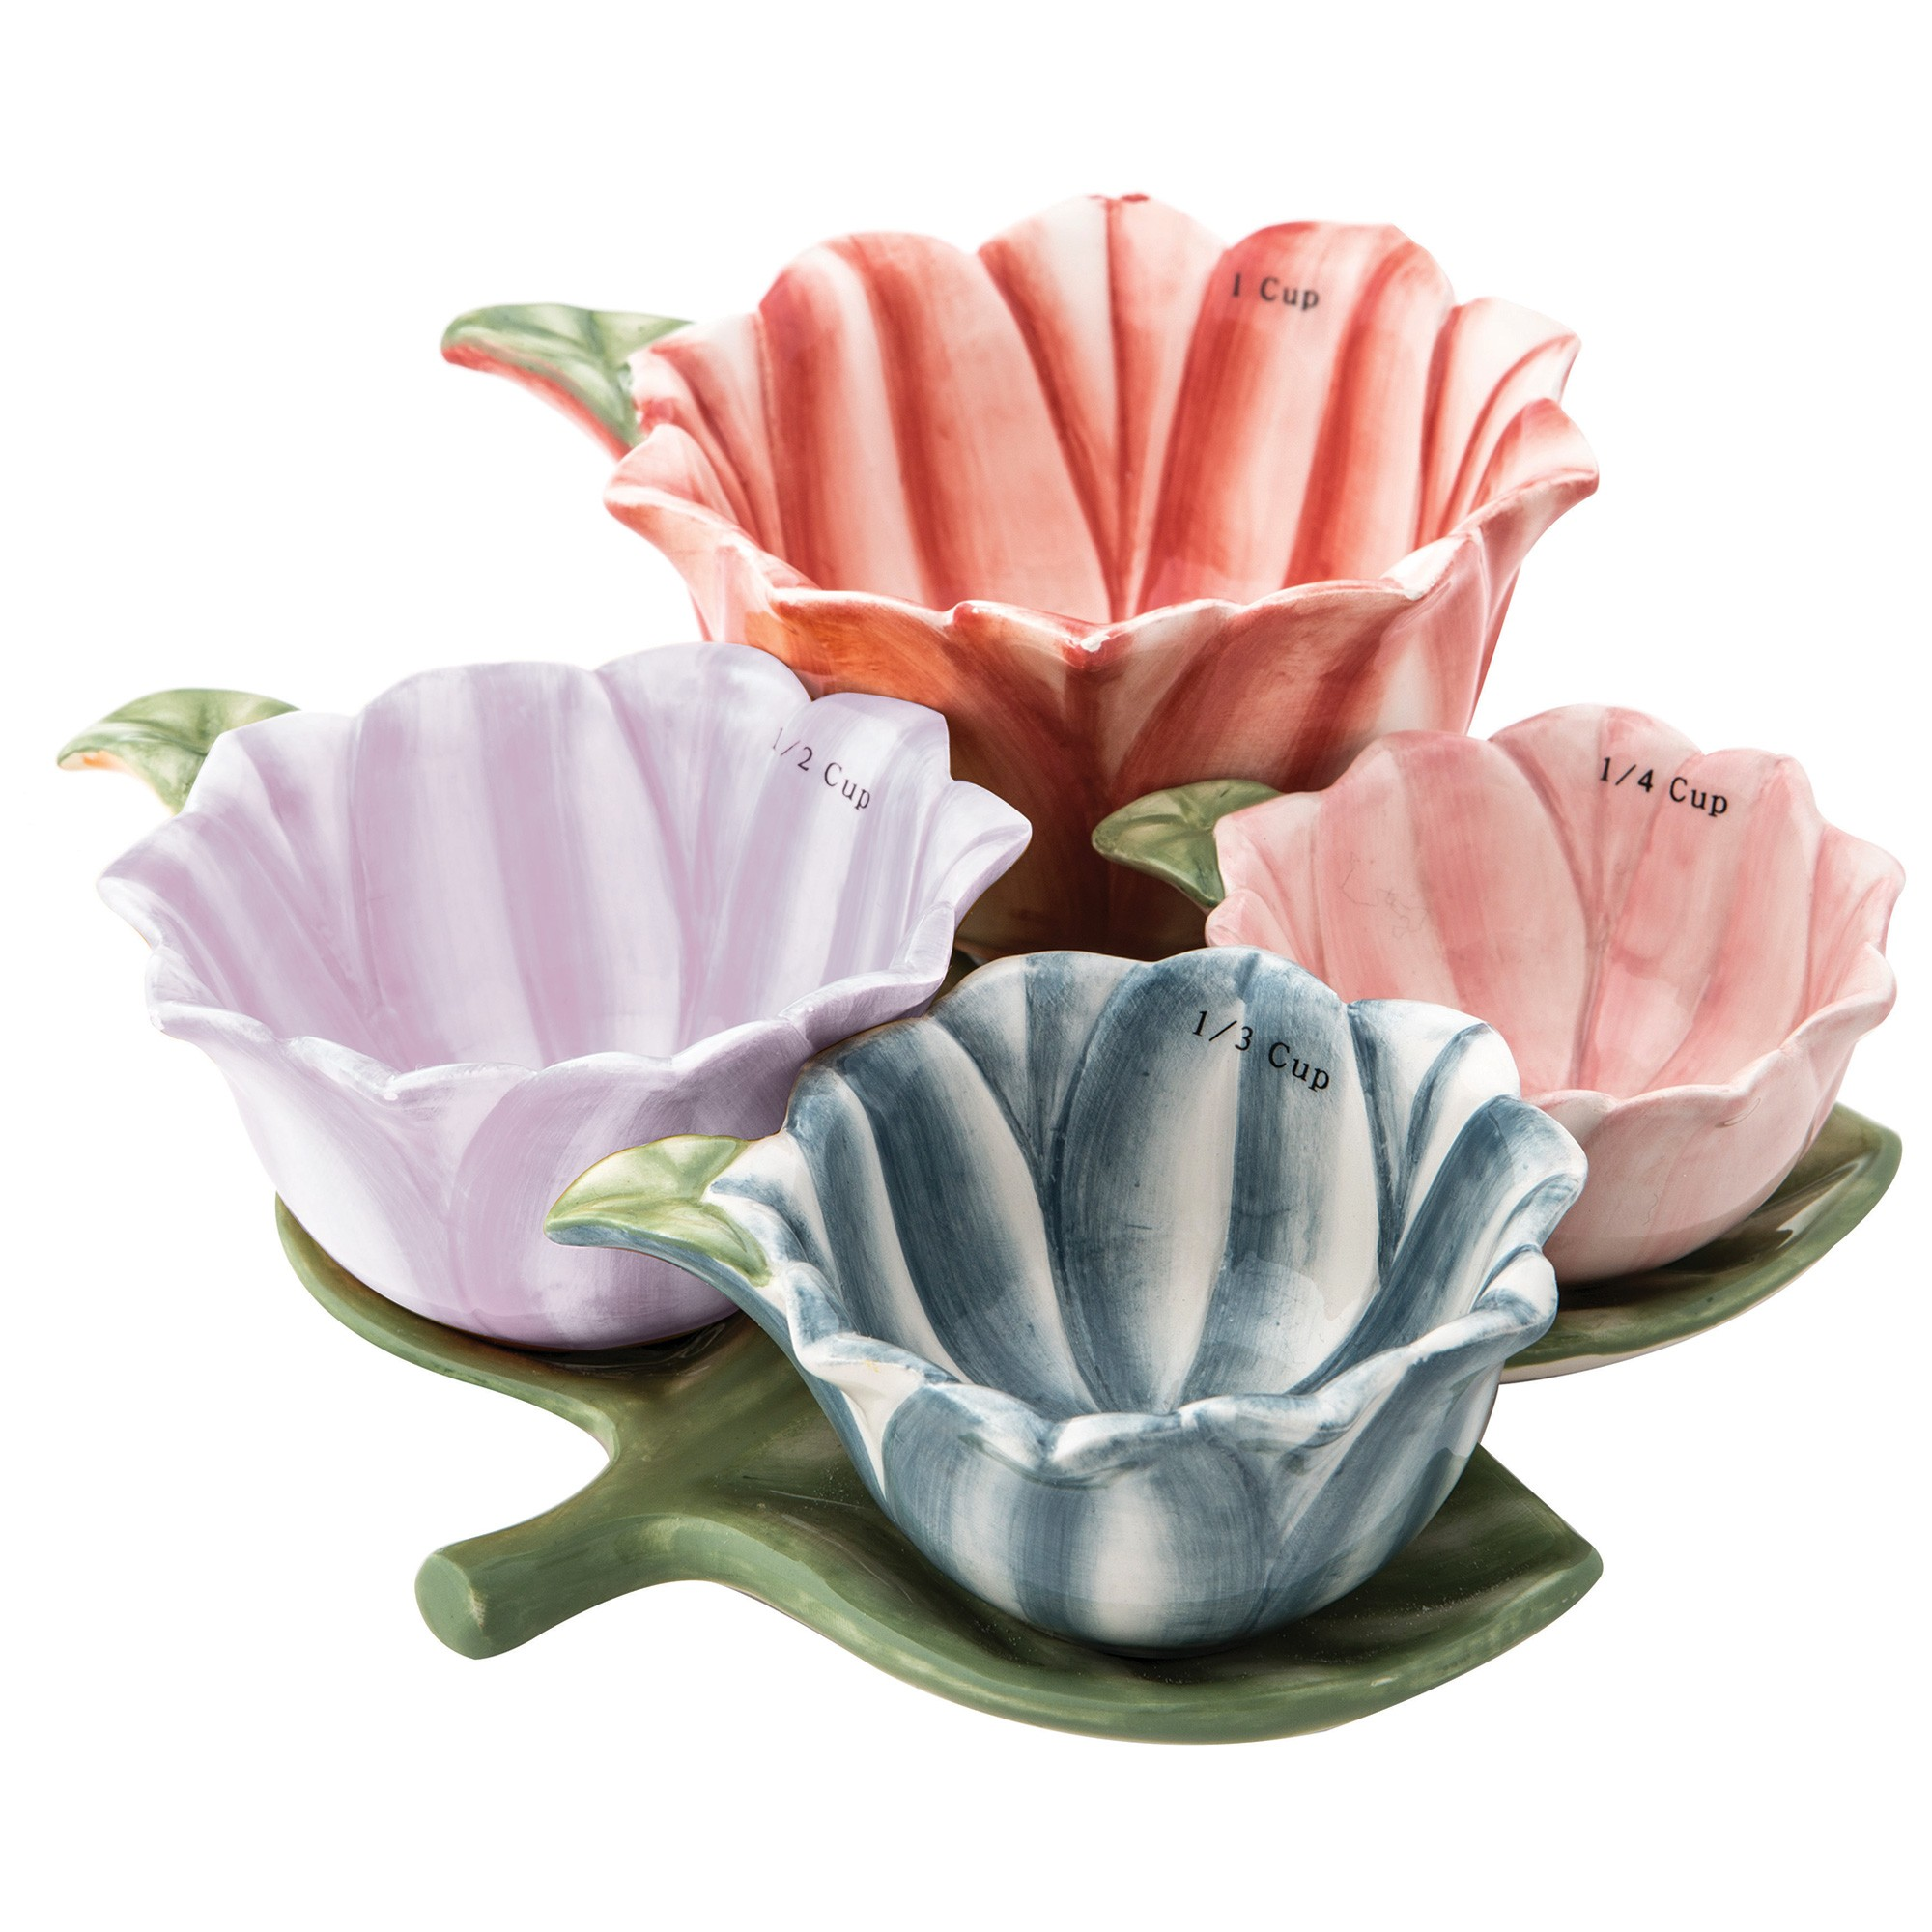 Anna Gare 5 Piece Dolomite Bouquet Measuring Cup & Leaf Tray Set